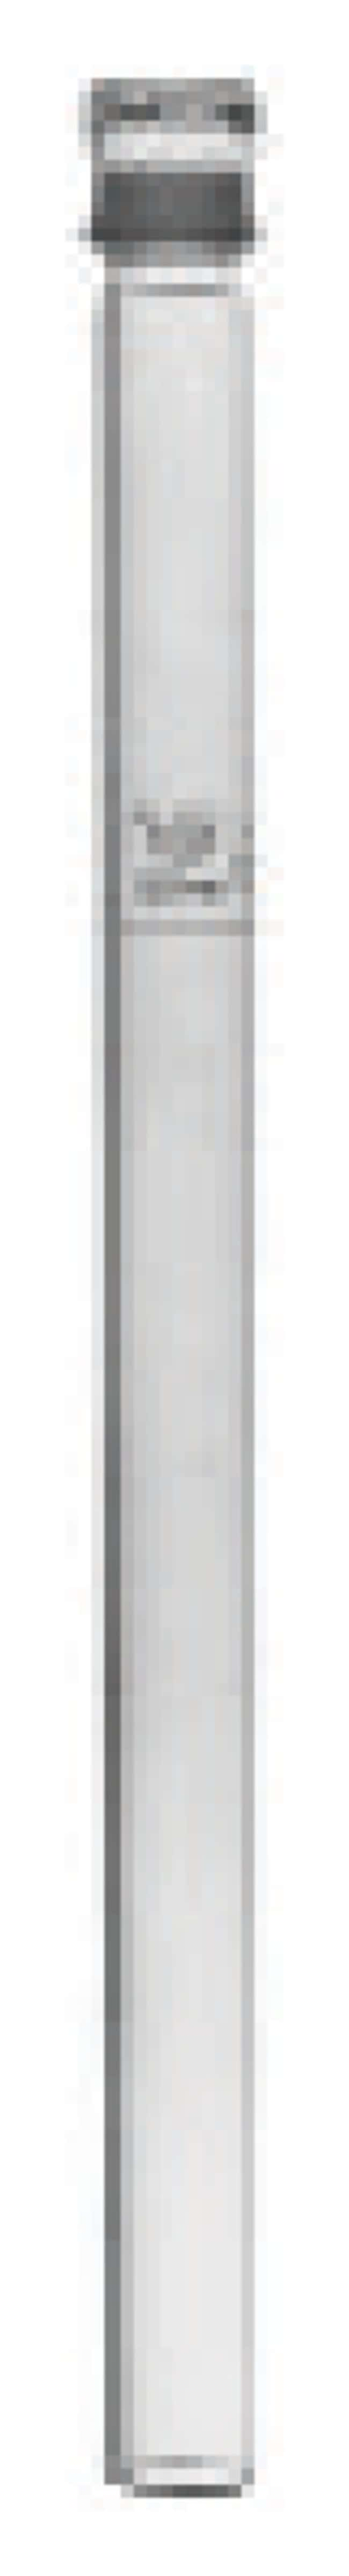 DWK Life Sciences Kimble™ Exax Brand Nessler Tall-Form Color Comparison Tubes with standard taper Cap Stoppers